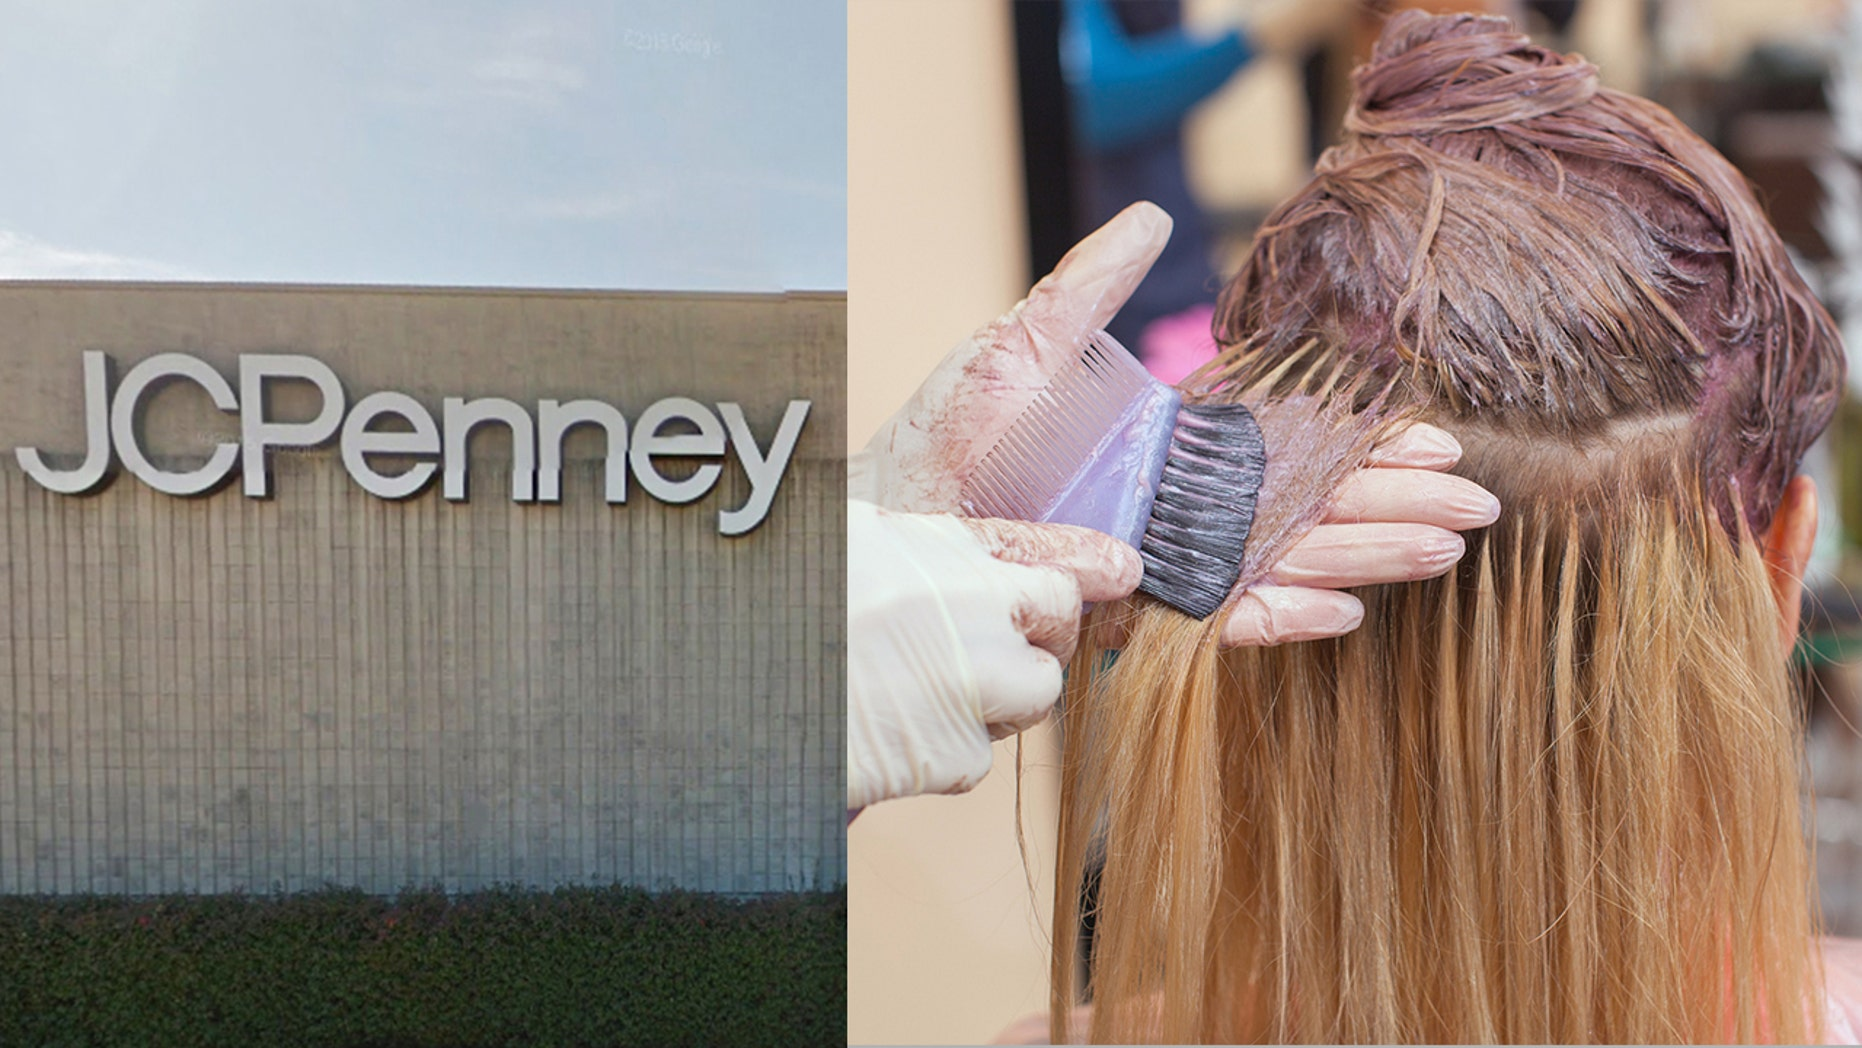 Virginia Woman Suing Jc Penney Salon For 45 Million For Horribly